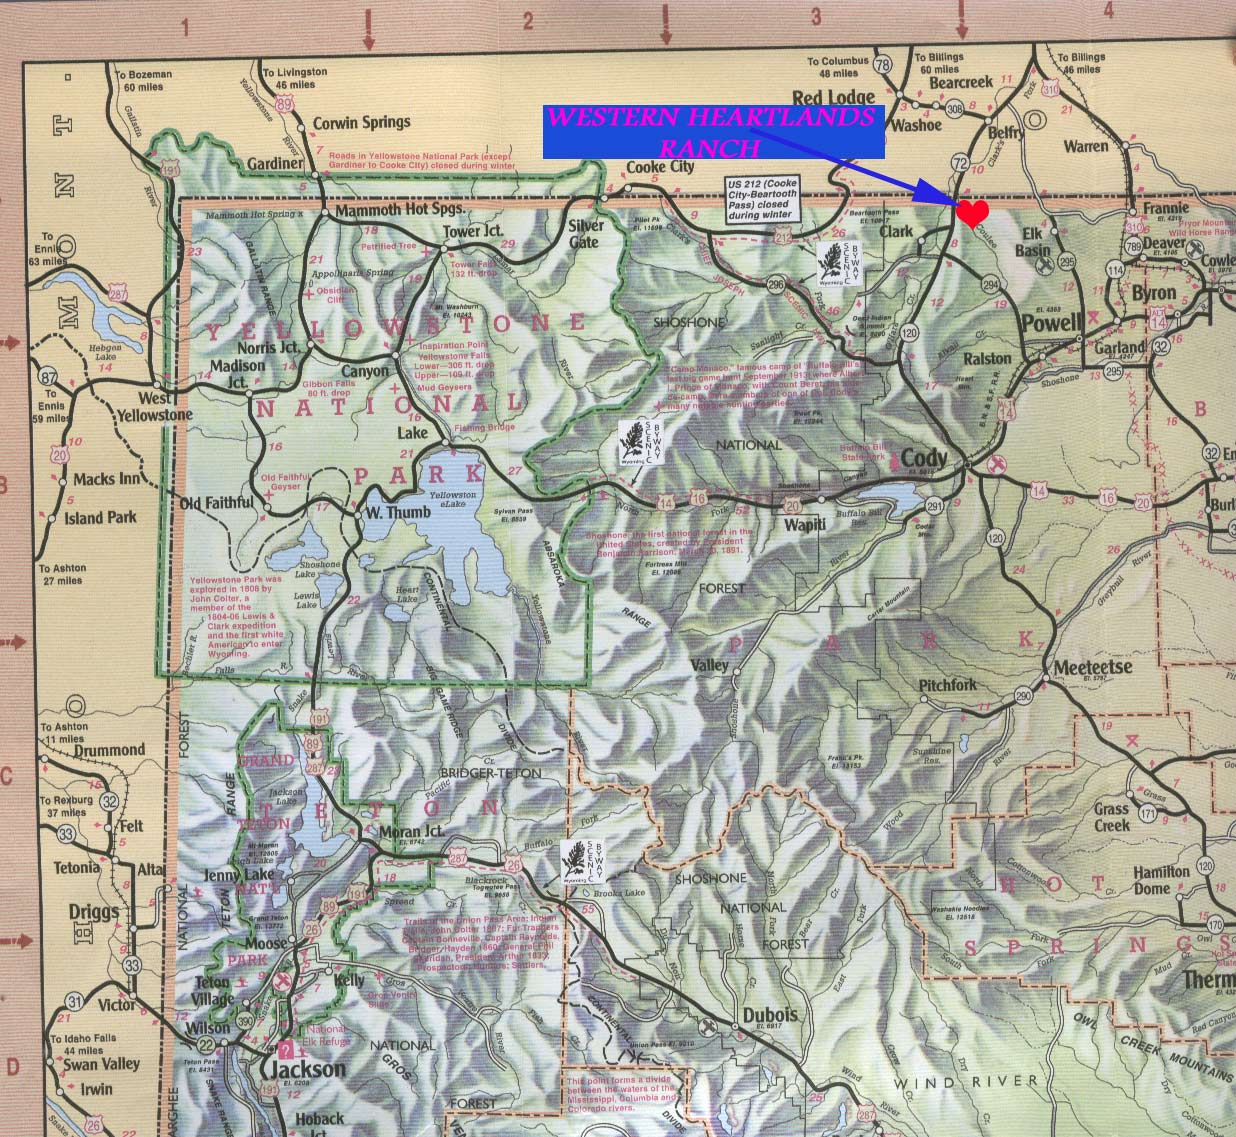 35 ACRES NEAR CODY WYOMING AND YELLOWSTONE PARK 5 DOWN